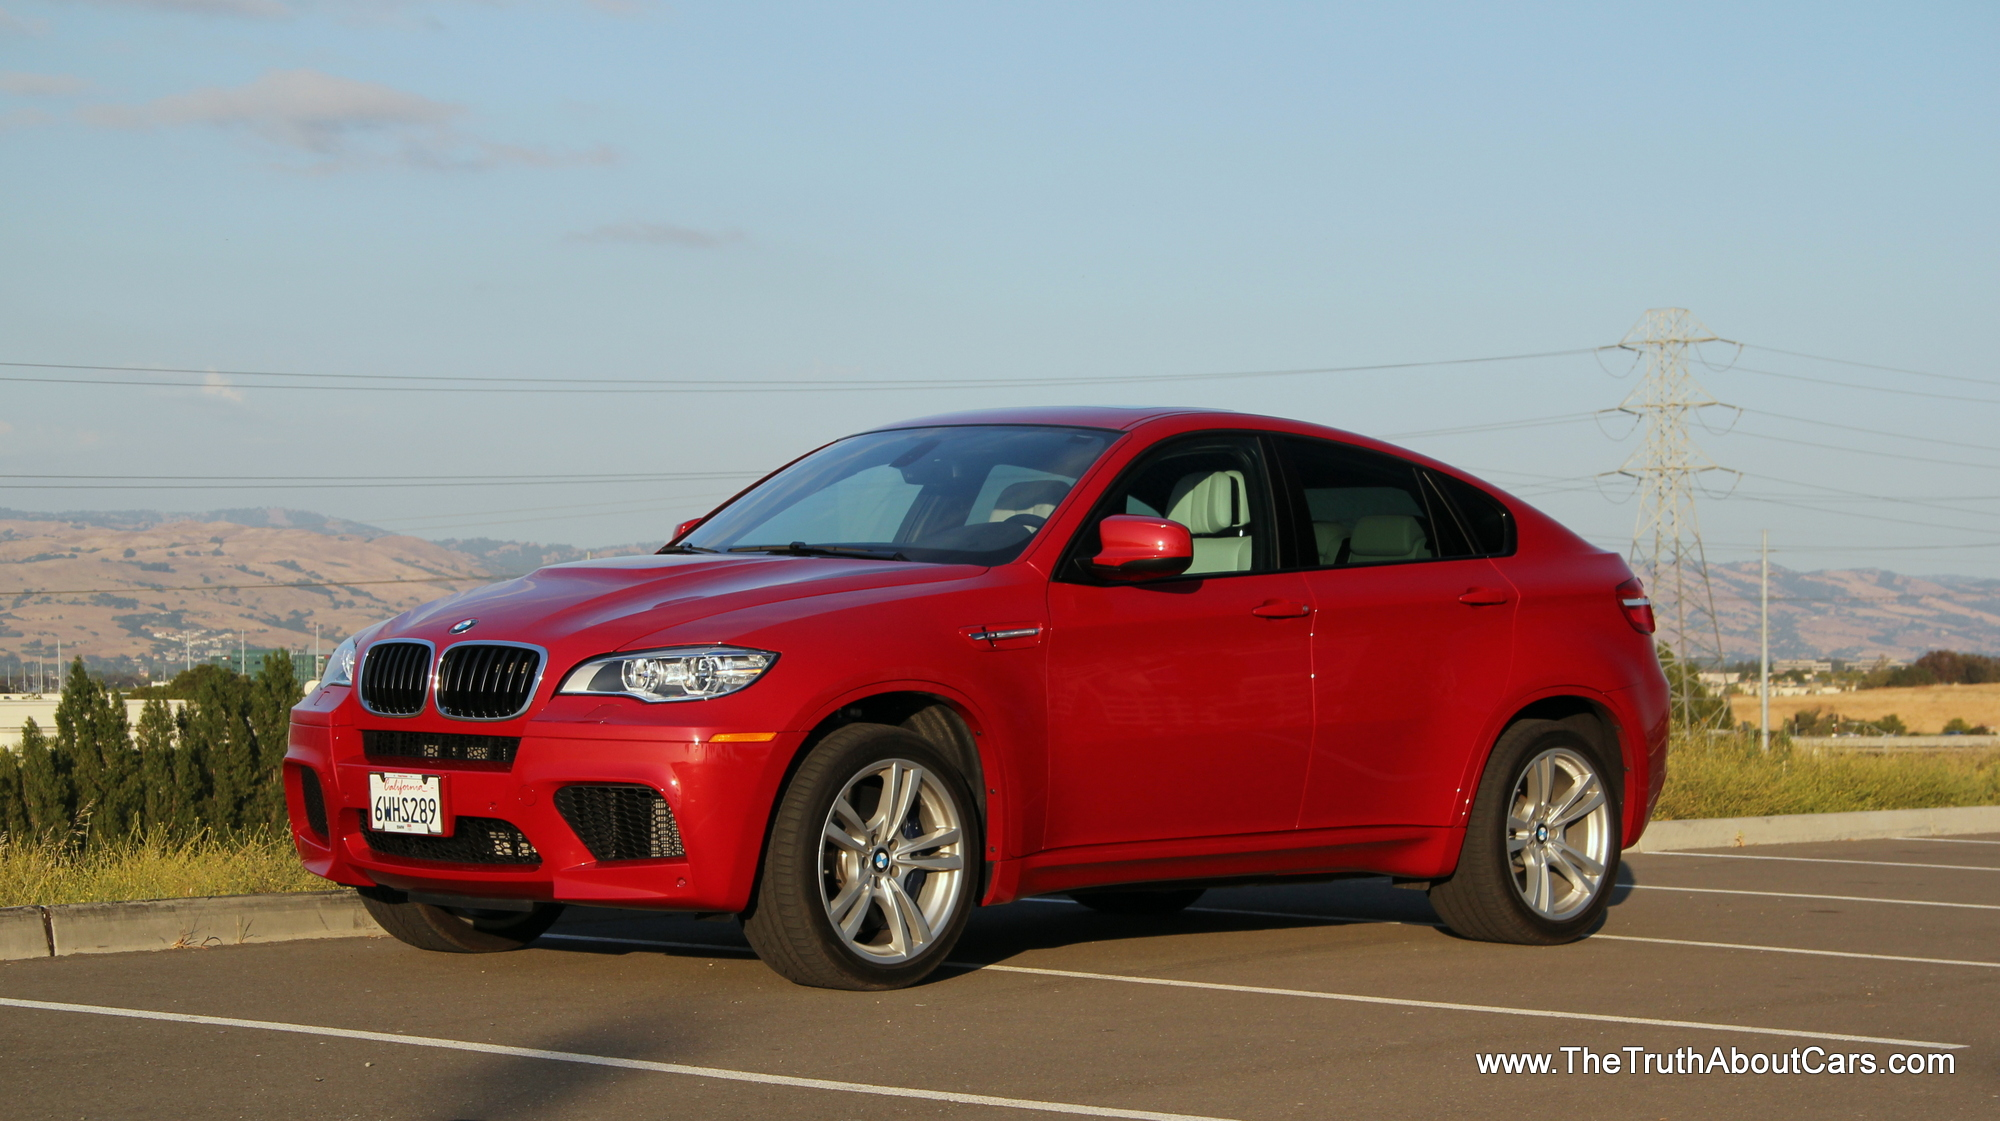 Review: 2013 BMW X6M - Swansong Edition - The Truth About Cars